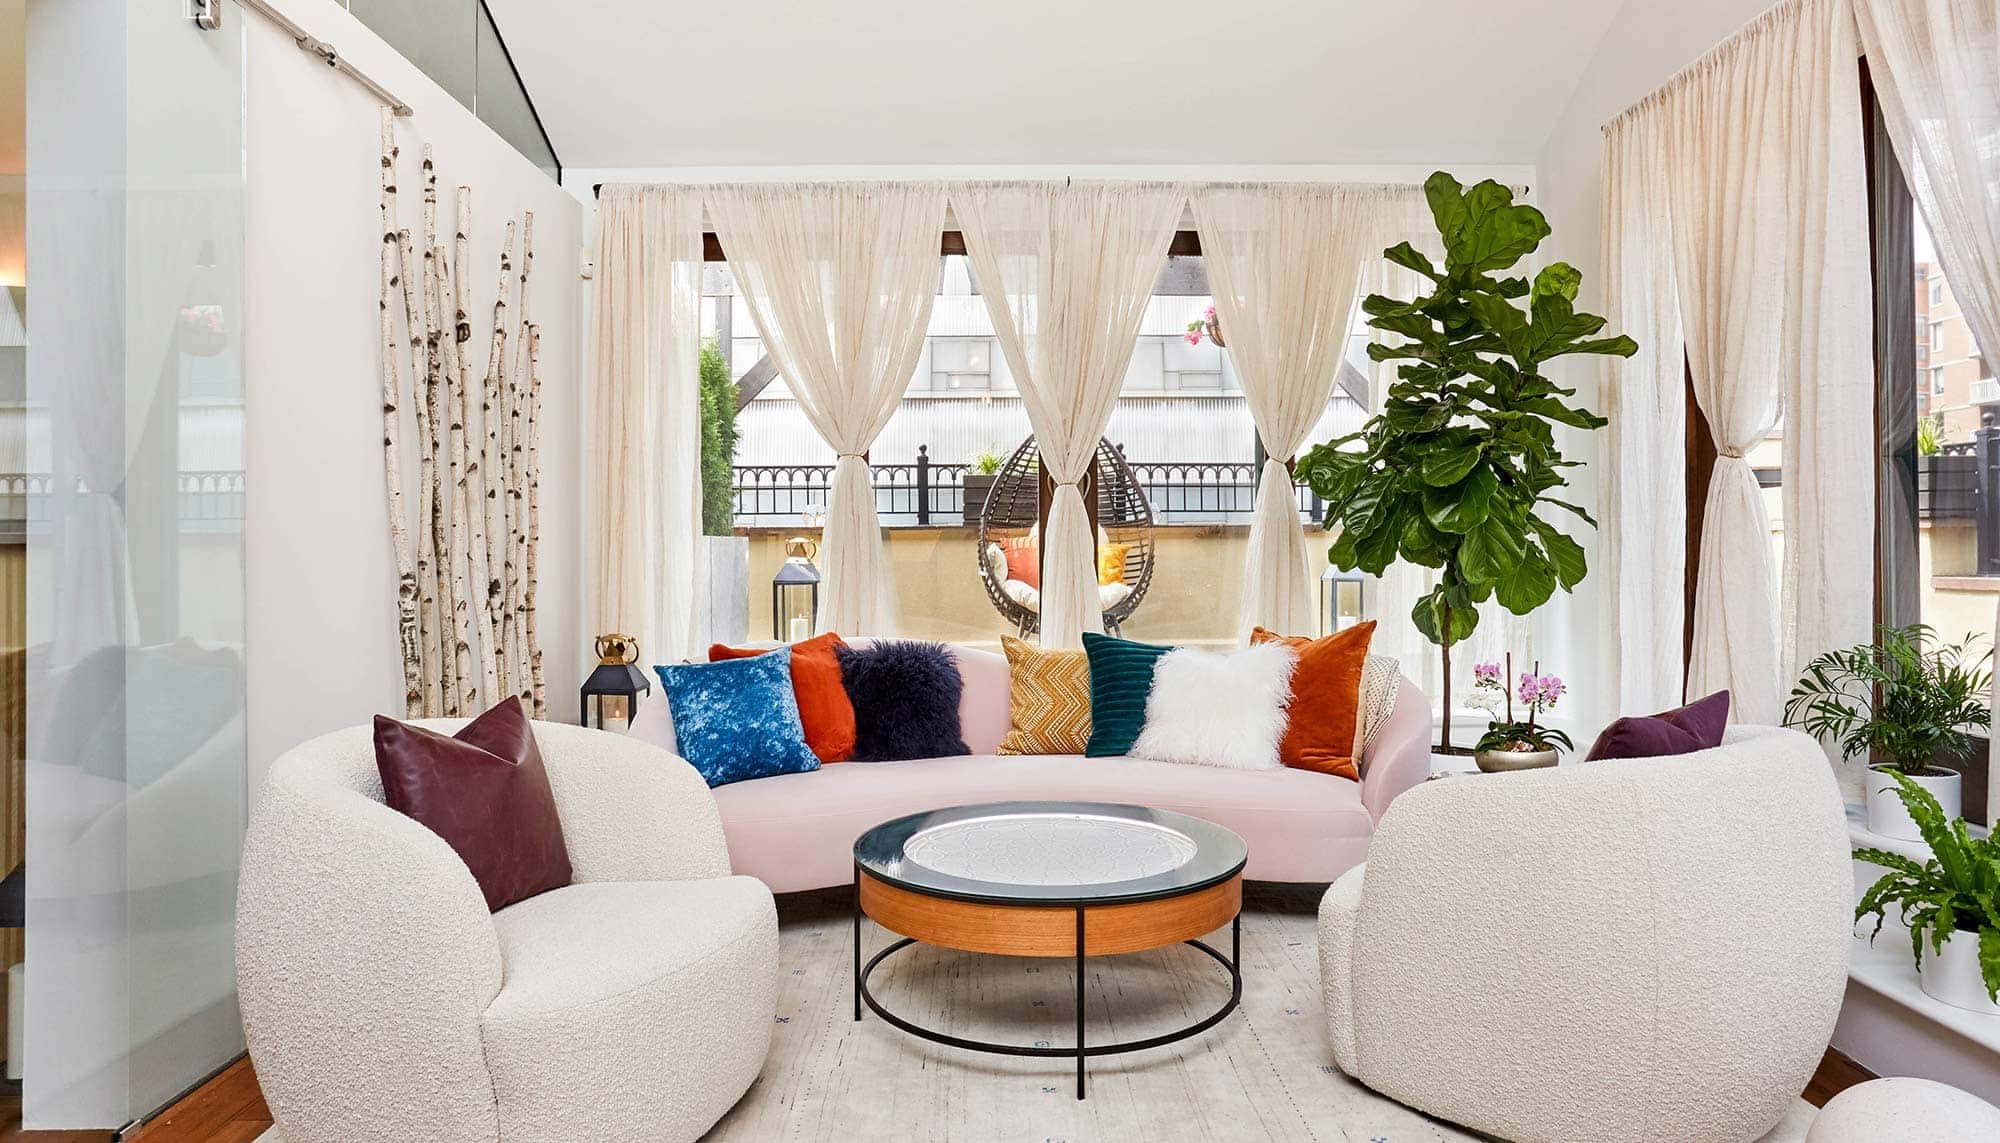 A cozy location with white couches, colorful cushions, plants, and curtains.